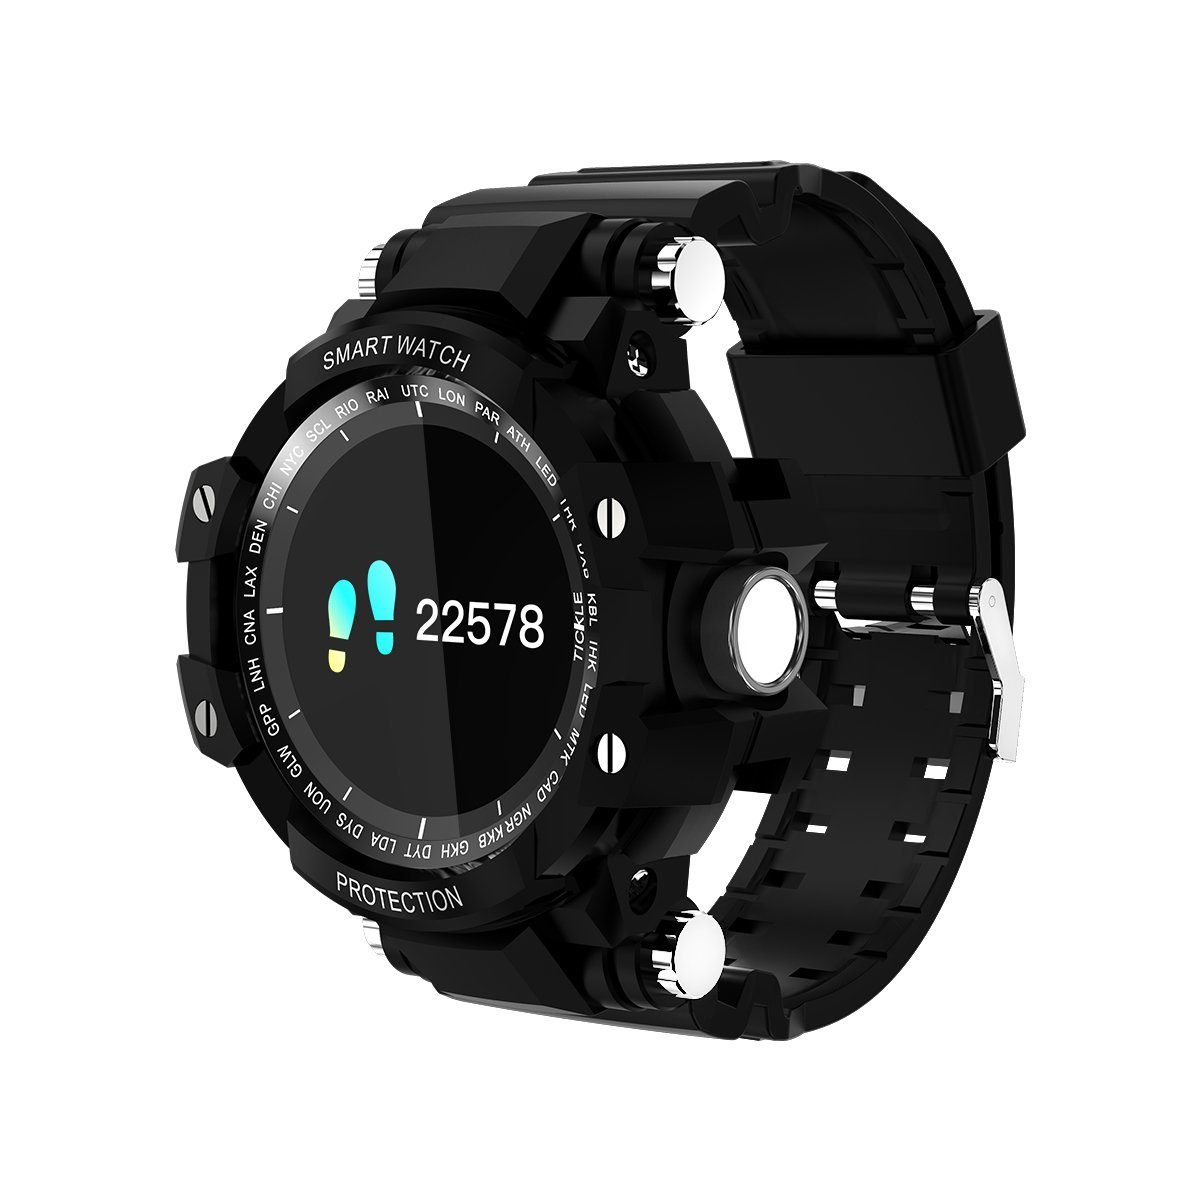 Smart Bluetooth Sport watch Migemi-Tech ZSZ18B Full Screen view One key Control Waterproof Heart Rate Pedometer For Android IOS Smart Mobile Phone (Black)